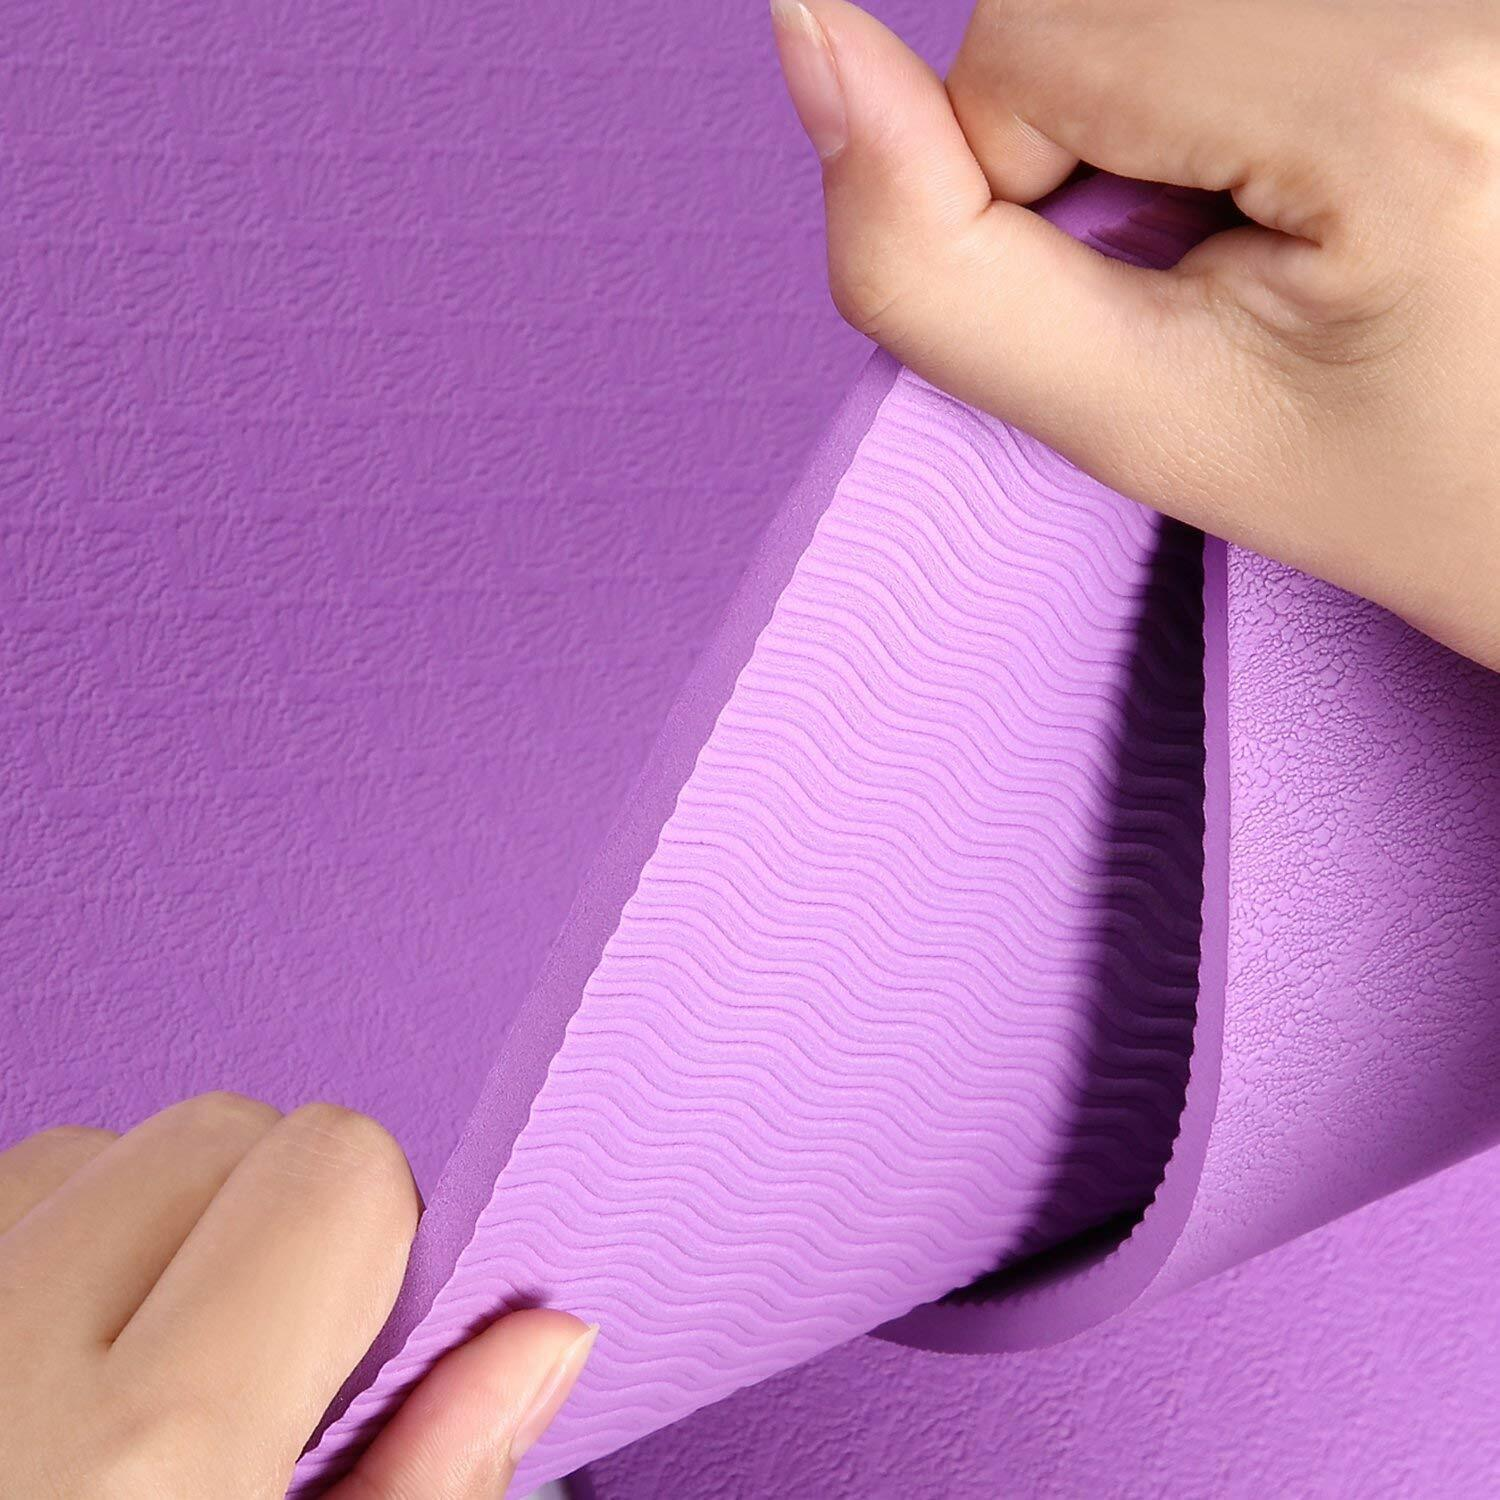 HiHill Yoga Mat, -TPE Non Slip, High Density, with Carry Bag (YG-M1, Purple) 6